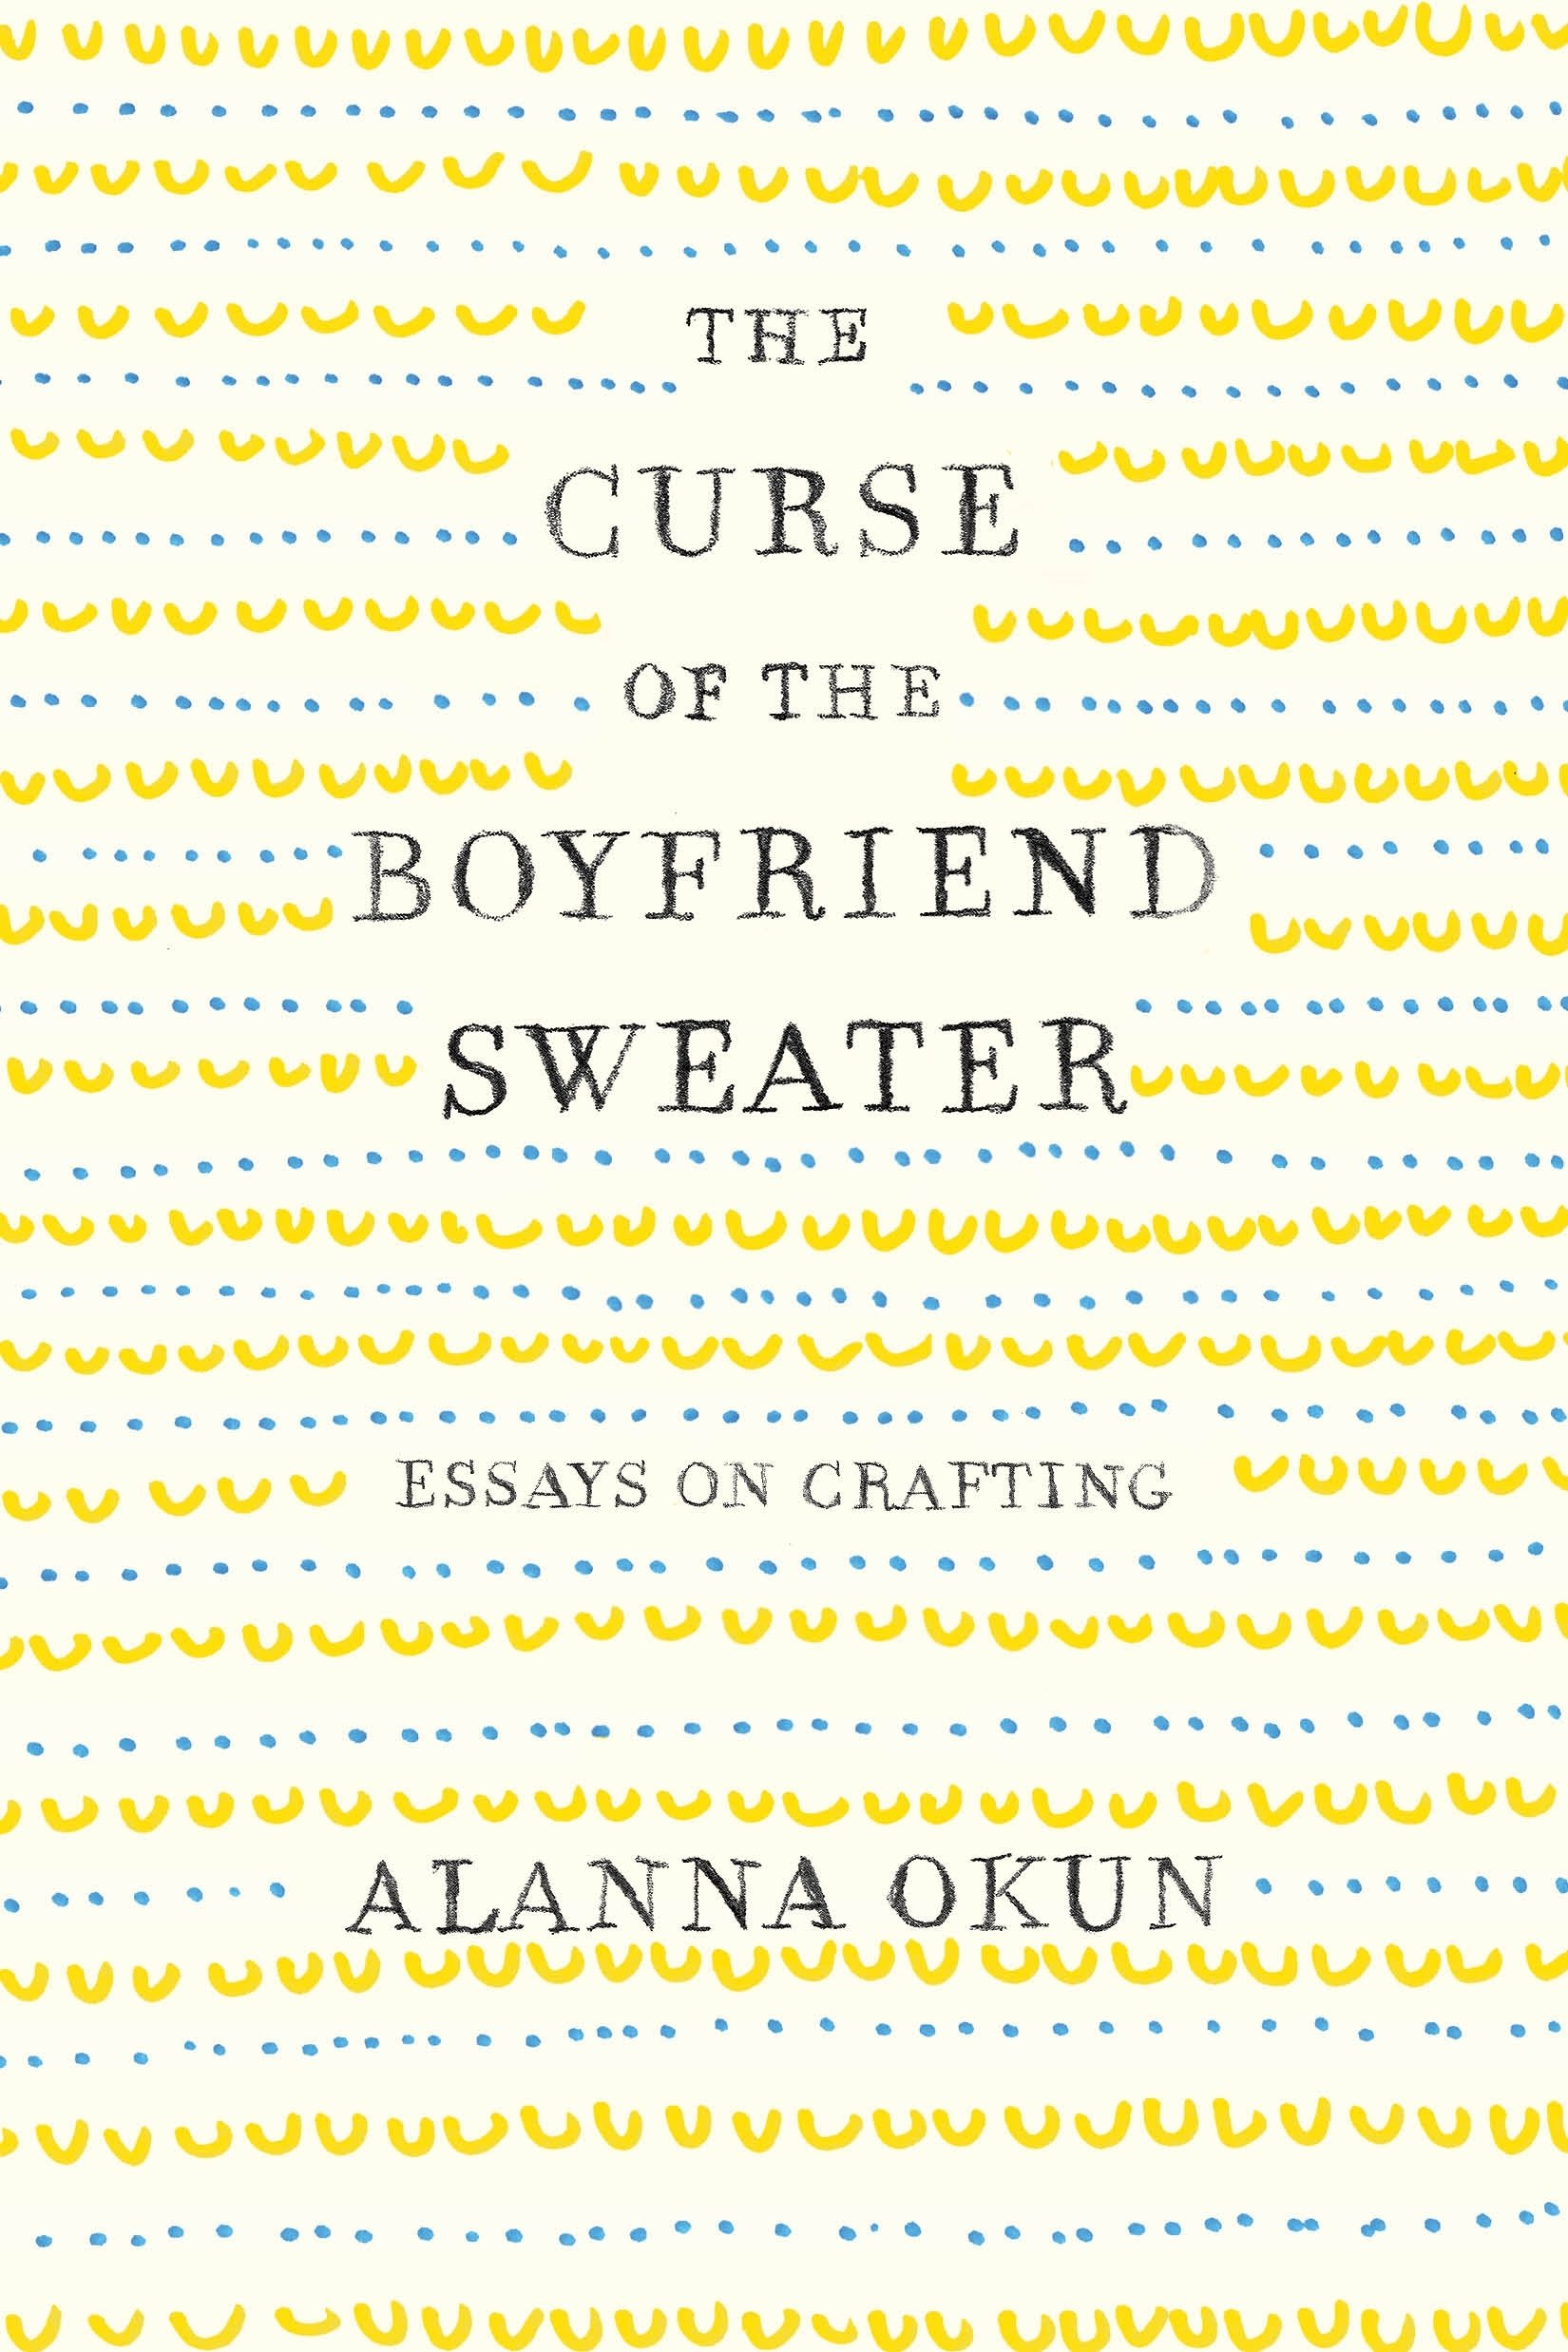 The Curse of the Boyfriend Sweater: Essays on Crafting ebook